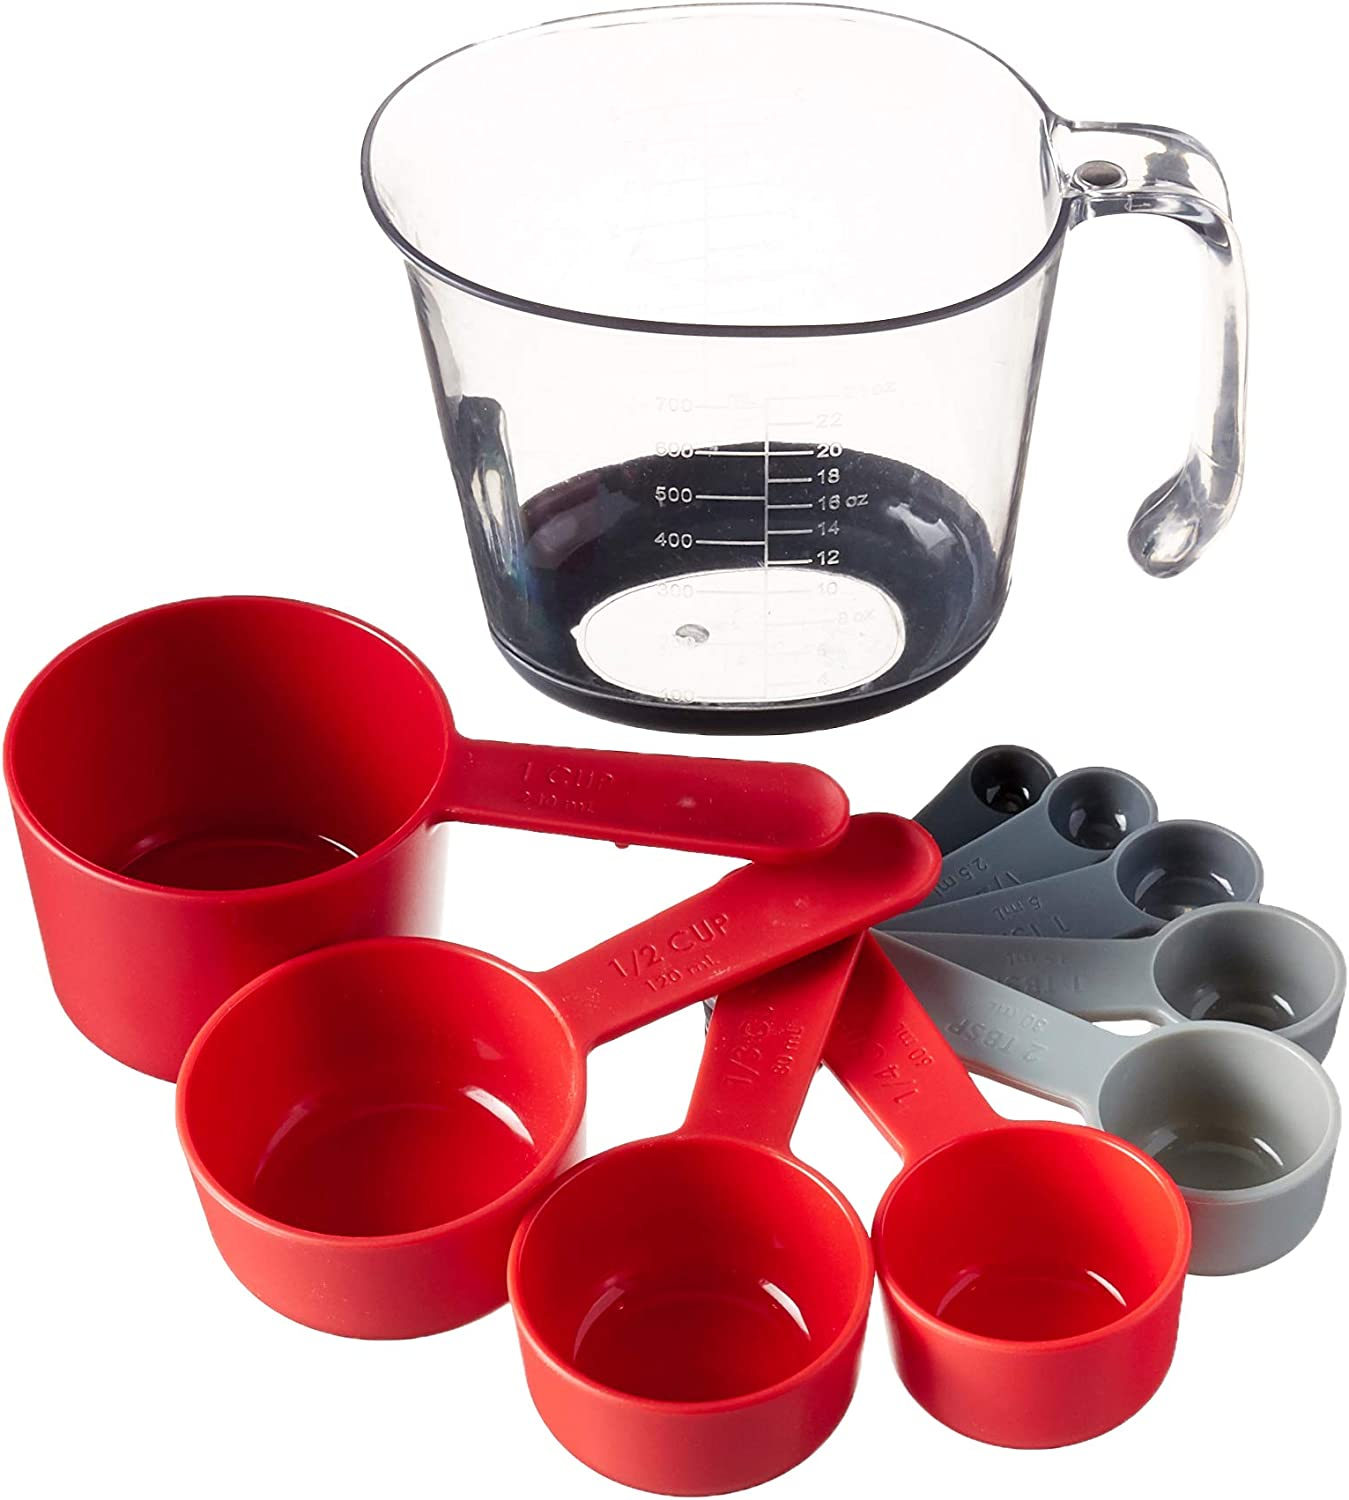 Tovolo Magnetic Nested System Cups & Spoons for Wet and Dry Ingredients, Cup Baking Set, Measuring Spoons & Cups for Cooking, Dishwasher-Safe & BPA-Free, Assorted Red/Gray